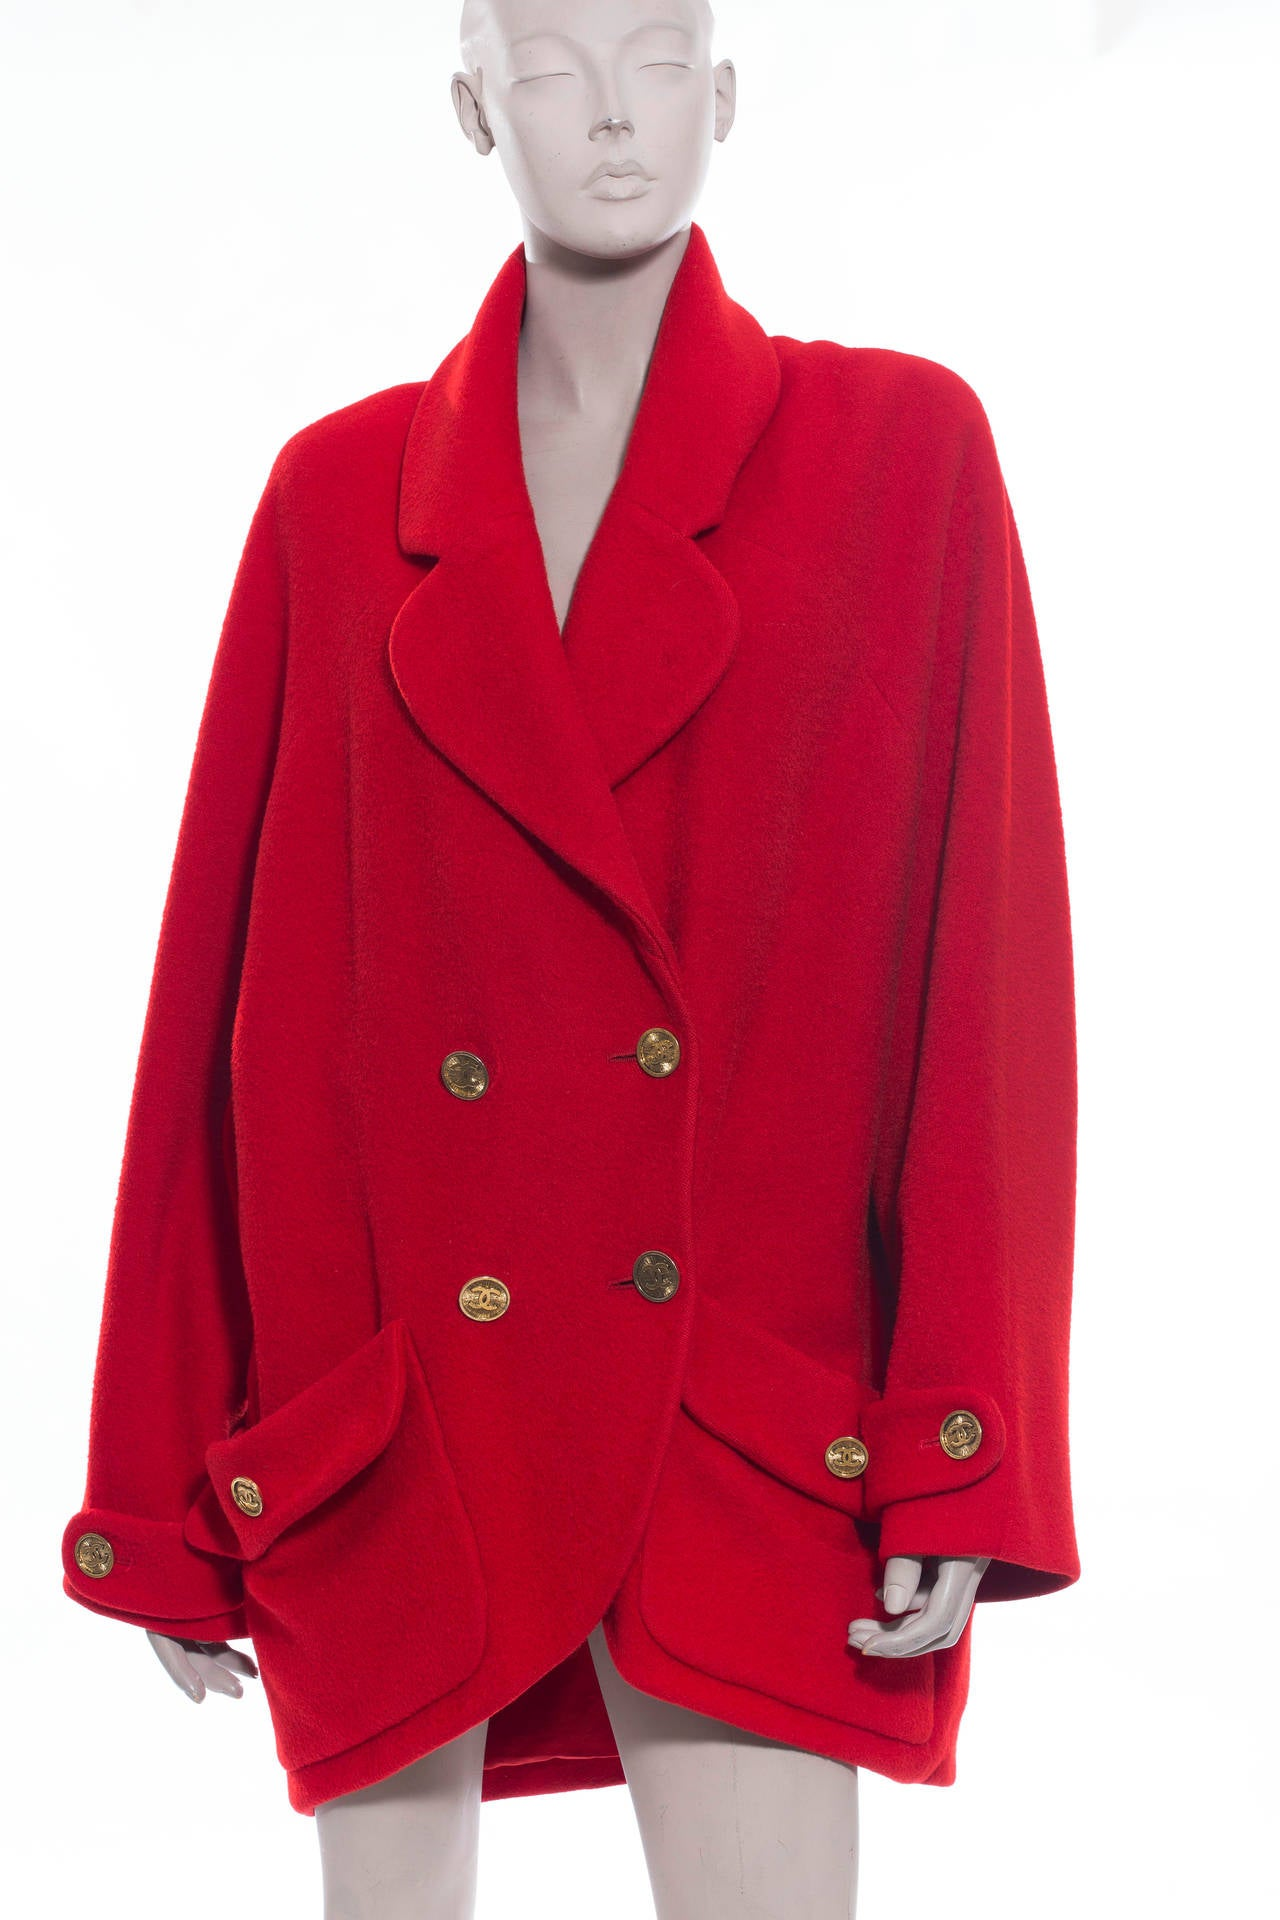 Chanel, Circa 1980's, red double breasted cocoon wool coat with signature CC buttons, two front pockets and fully lined in silk.